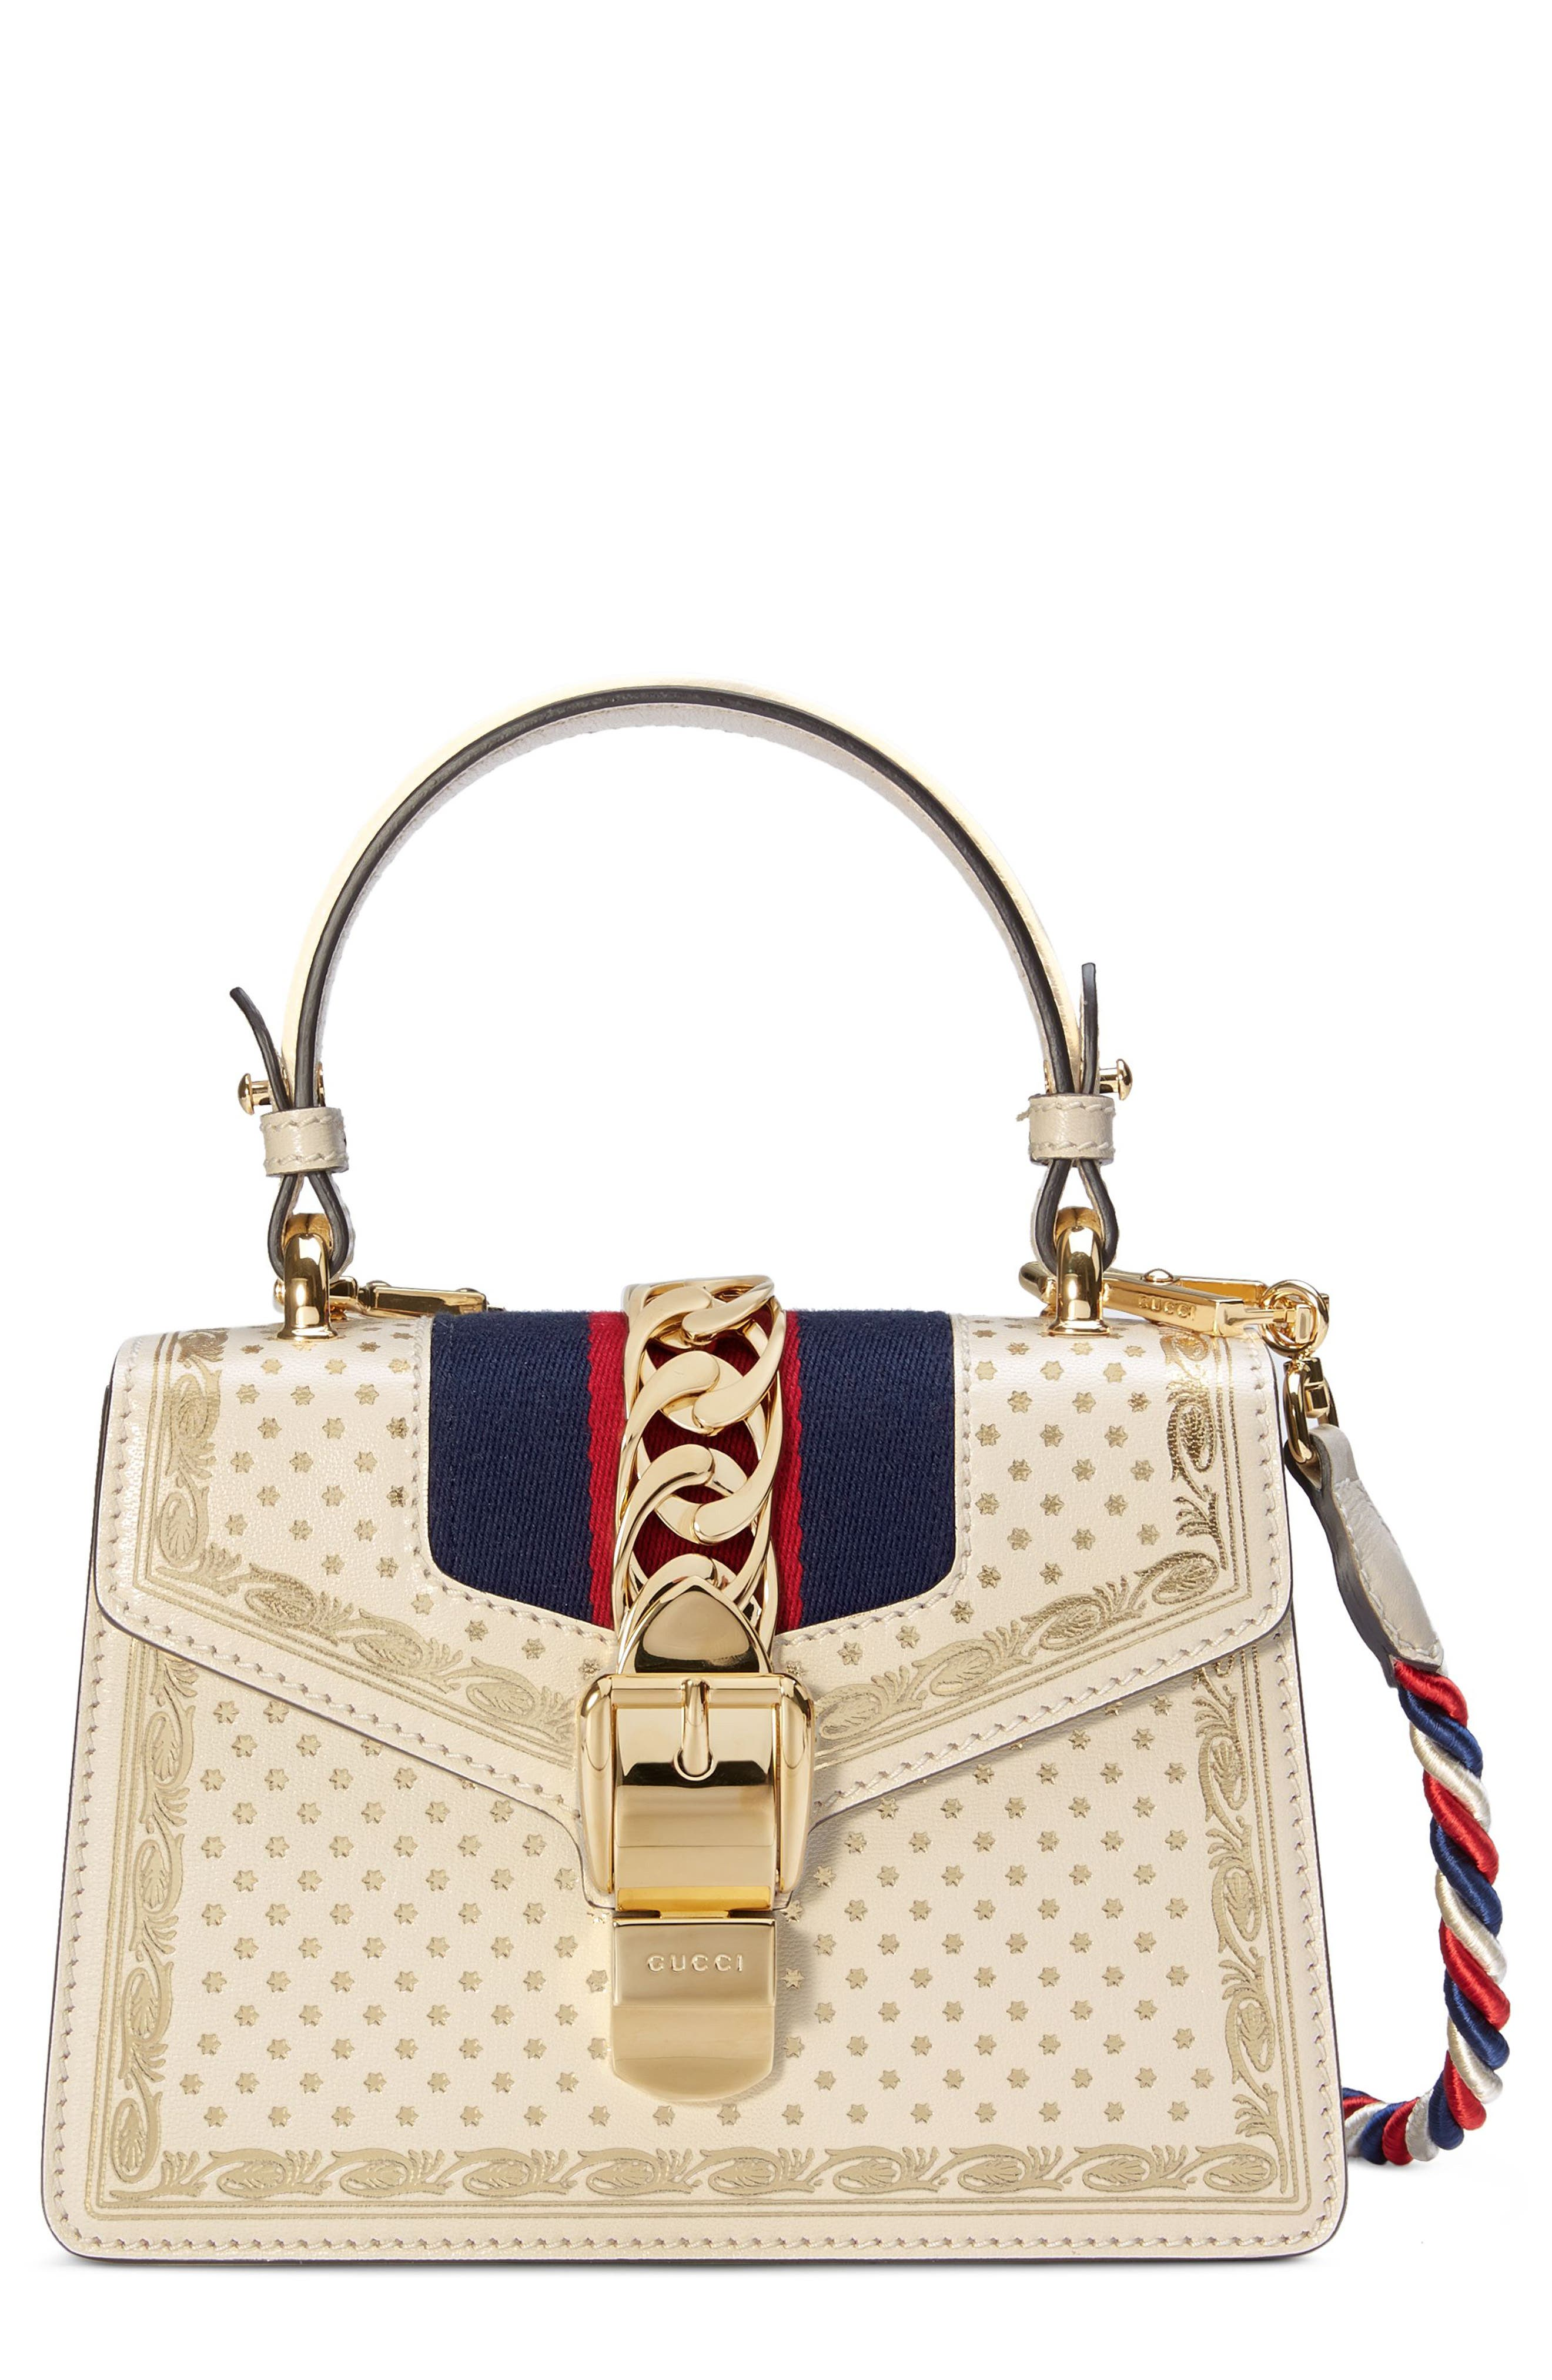 Mini Sylvie Moon & Stars Leather Shoulder Bag,                         Main,                         color, Mystic White/ Oro/ Blue Red